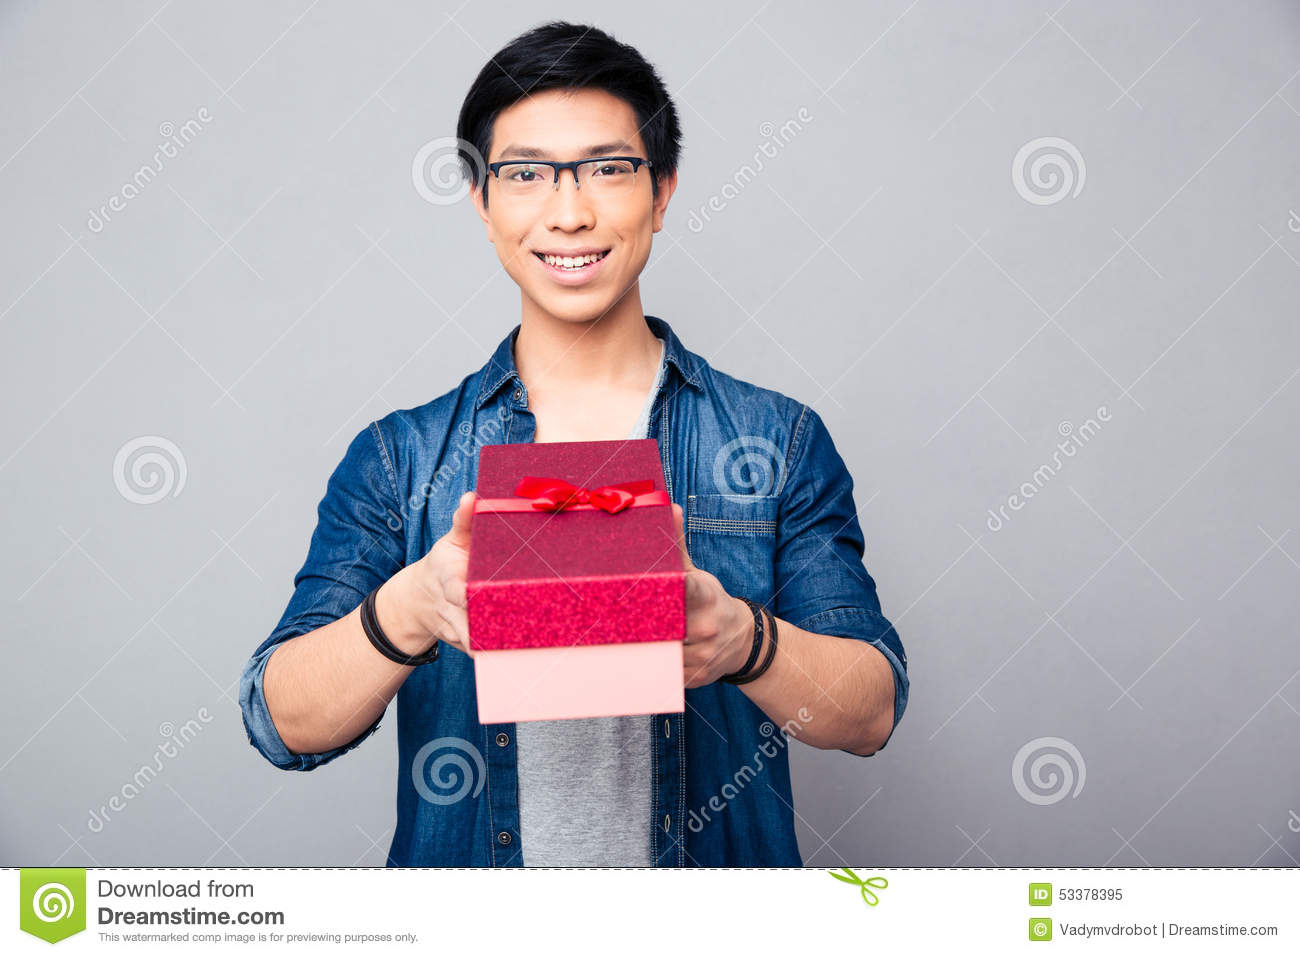 happy asian single men These were niche interest titles like dating for under a dollar: 301 ideas and how to date a white woman: a practical guide for asian men.